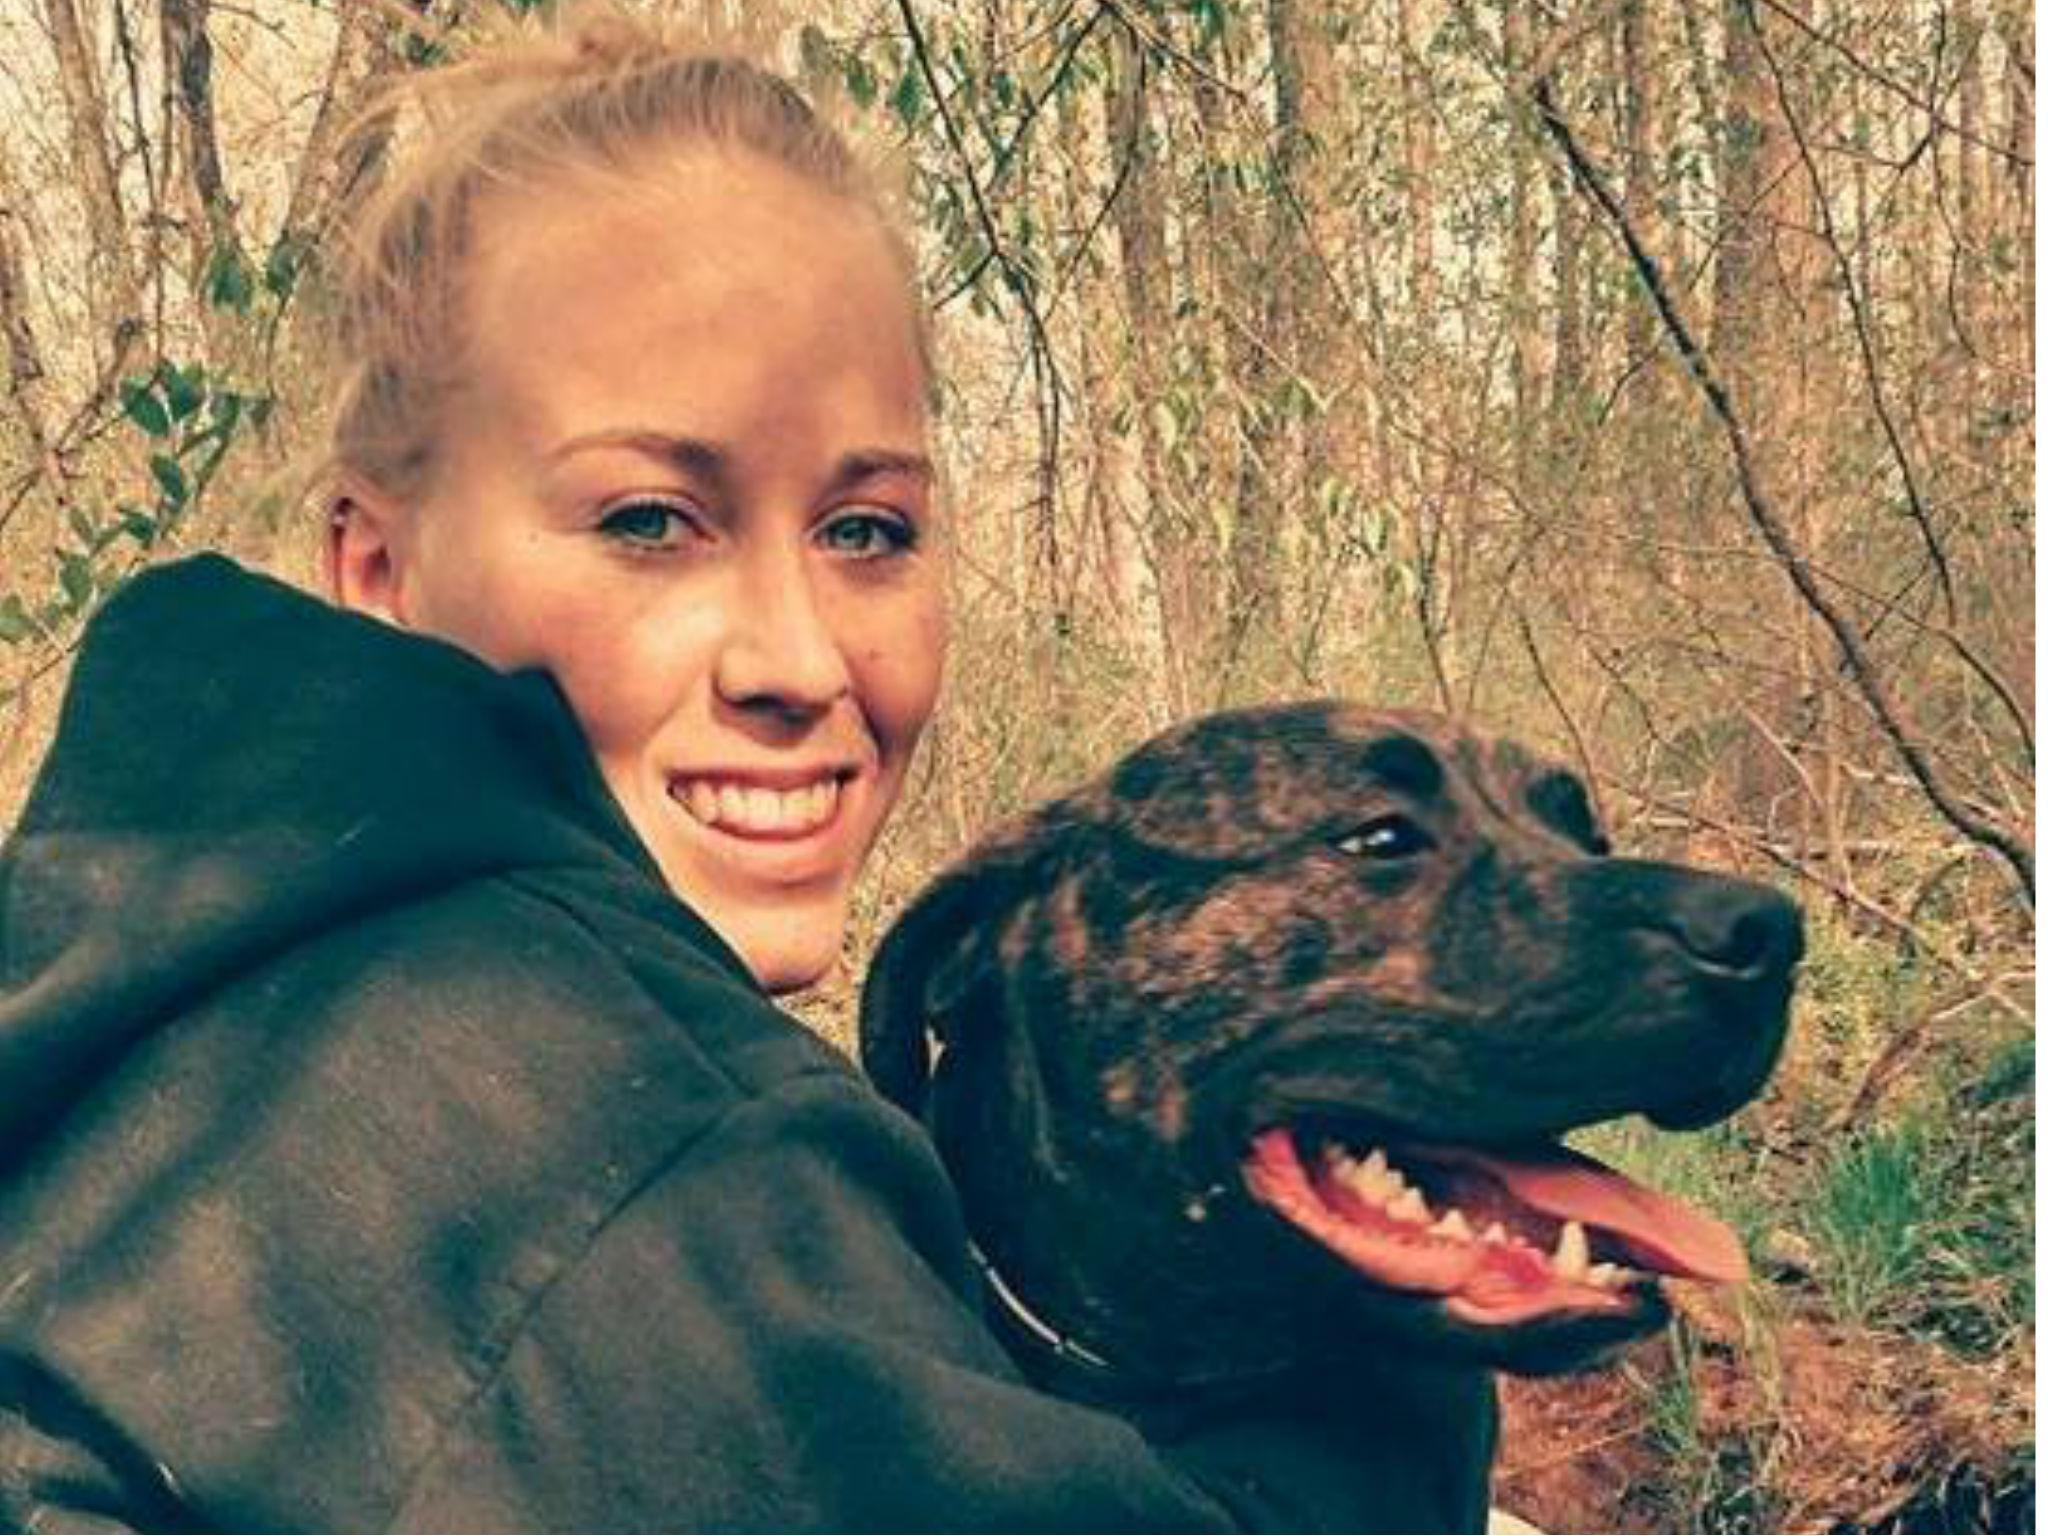 Two Dogs Put Down After Being Found Eating Owner In Woods The